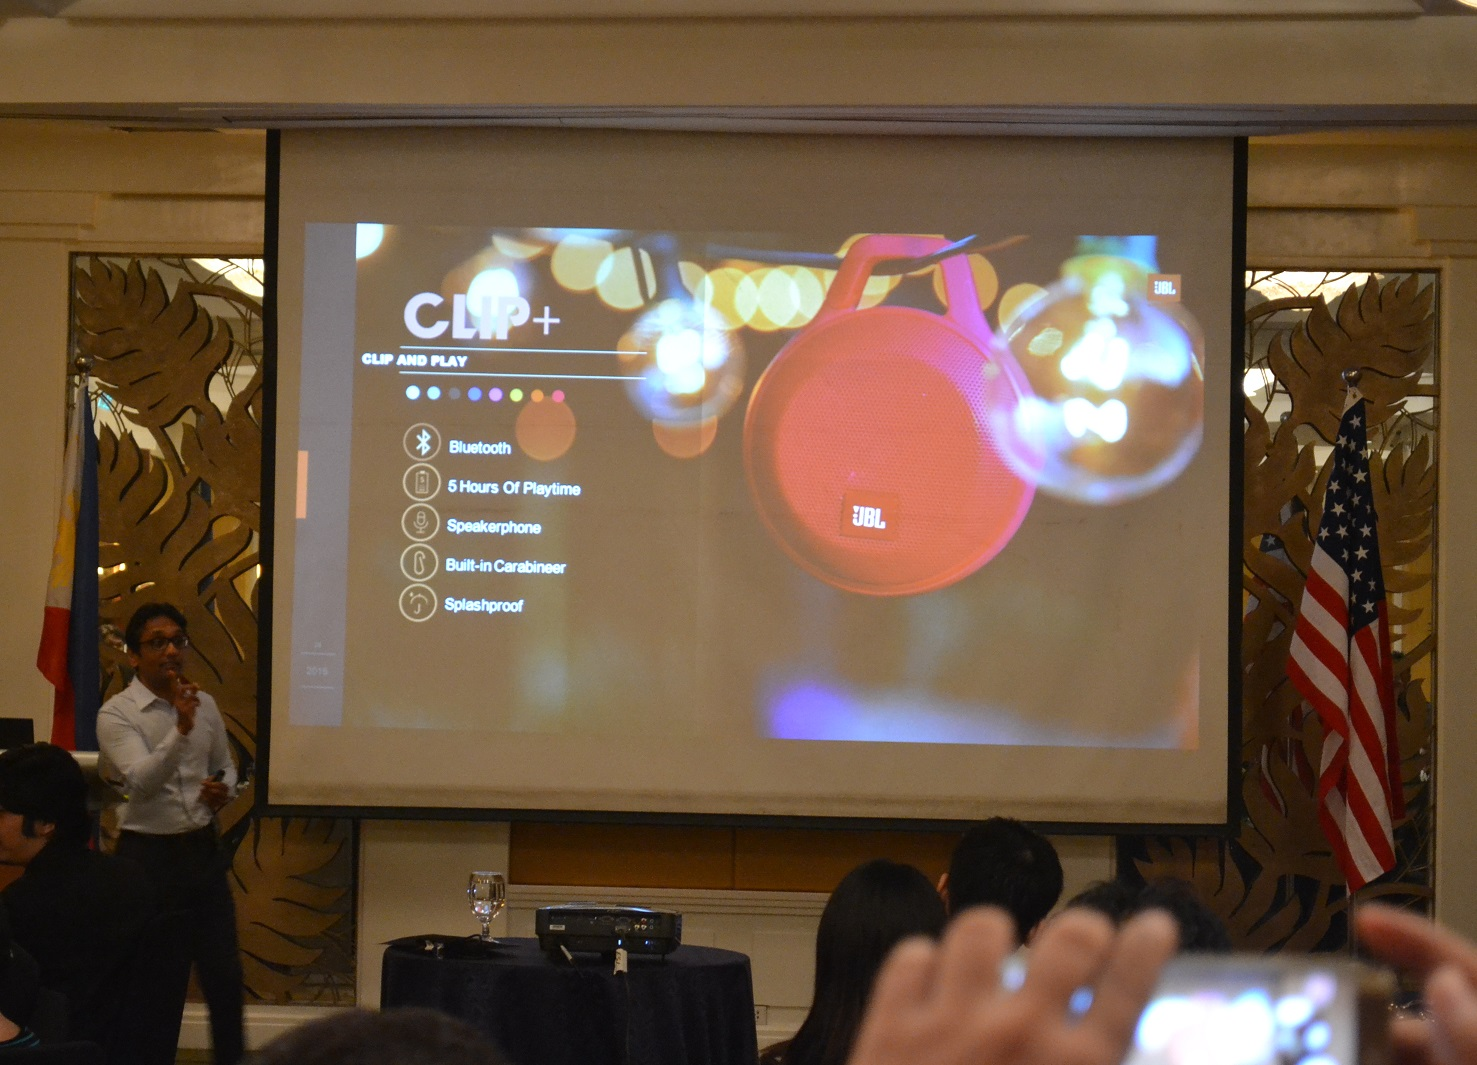 DSC 0036 - JBL Clip+ and Charge 2+ now available locally, priced Php  2,995 and Php 7,995, respectively